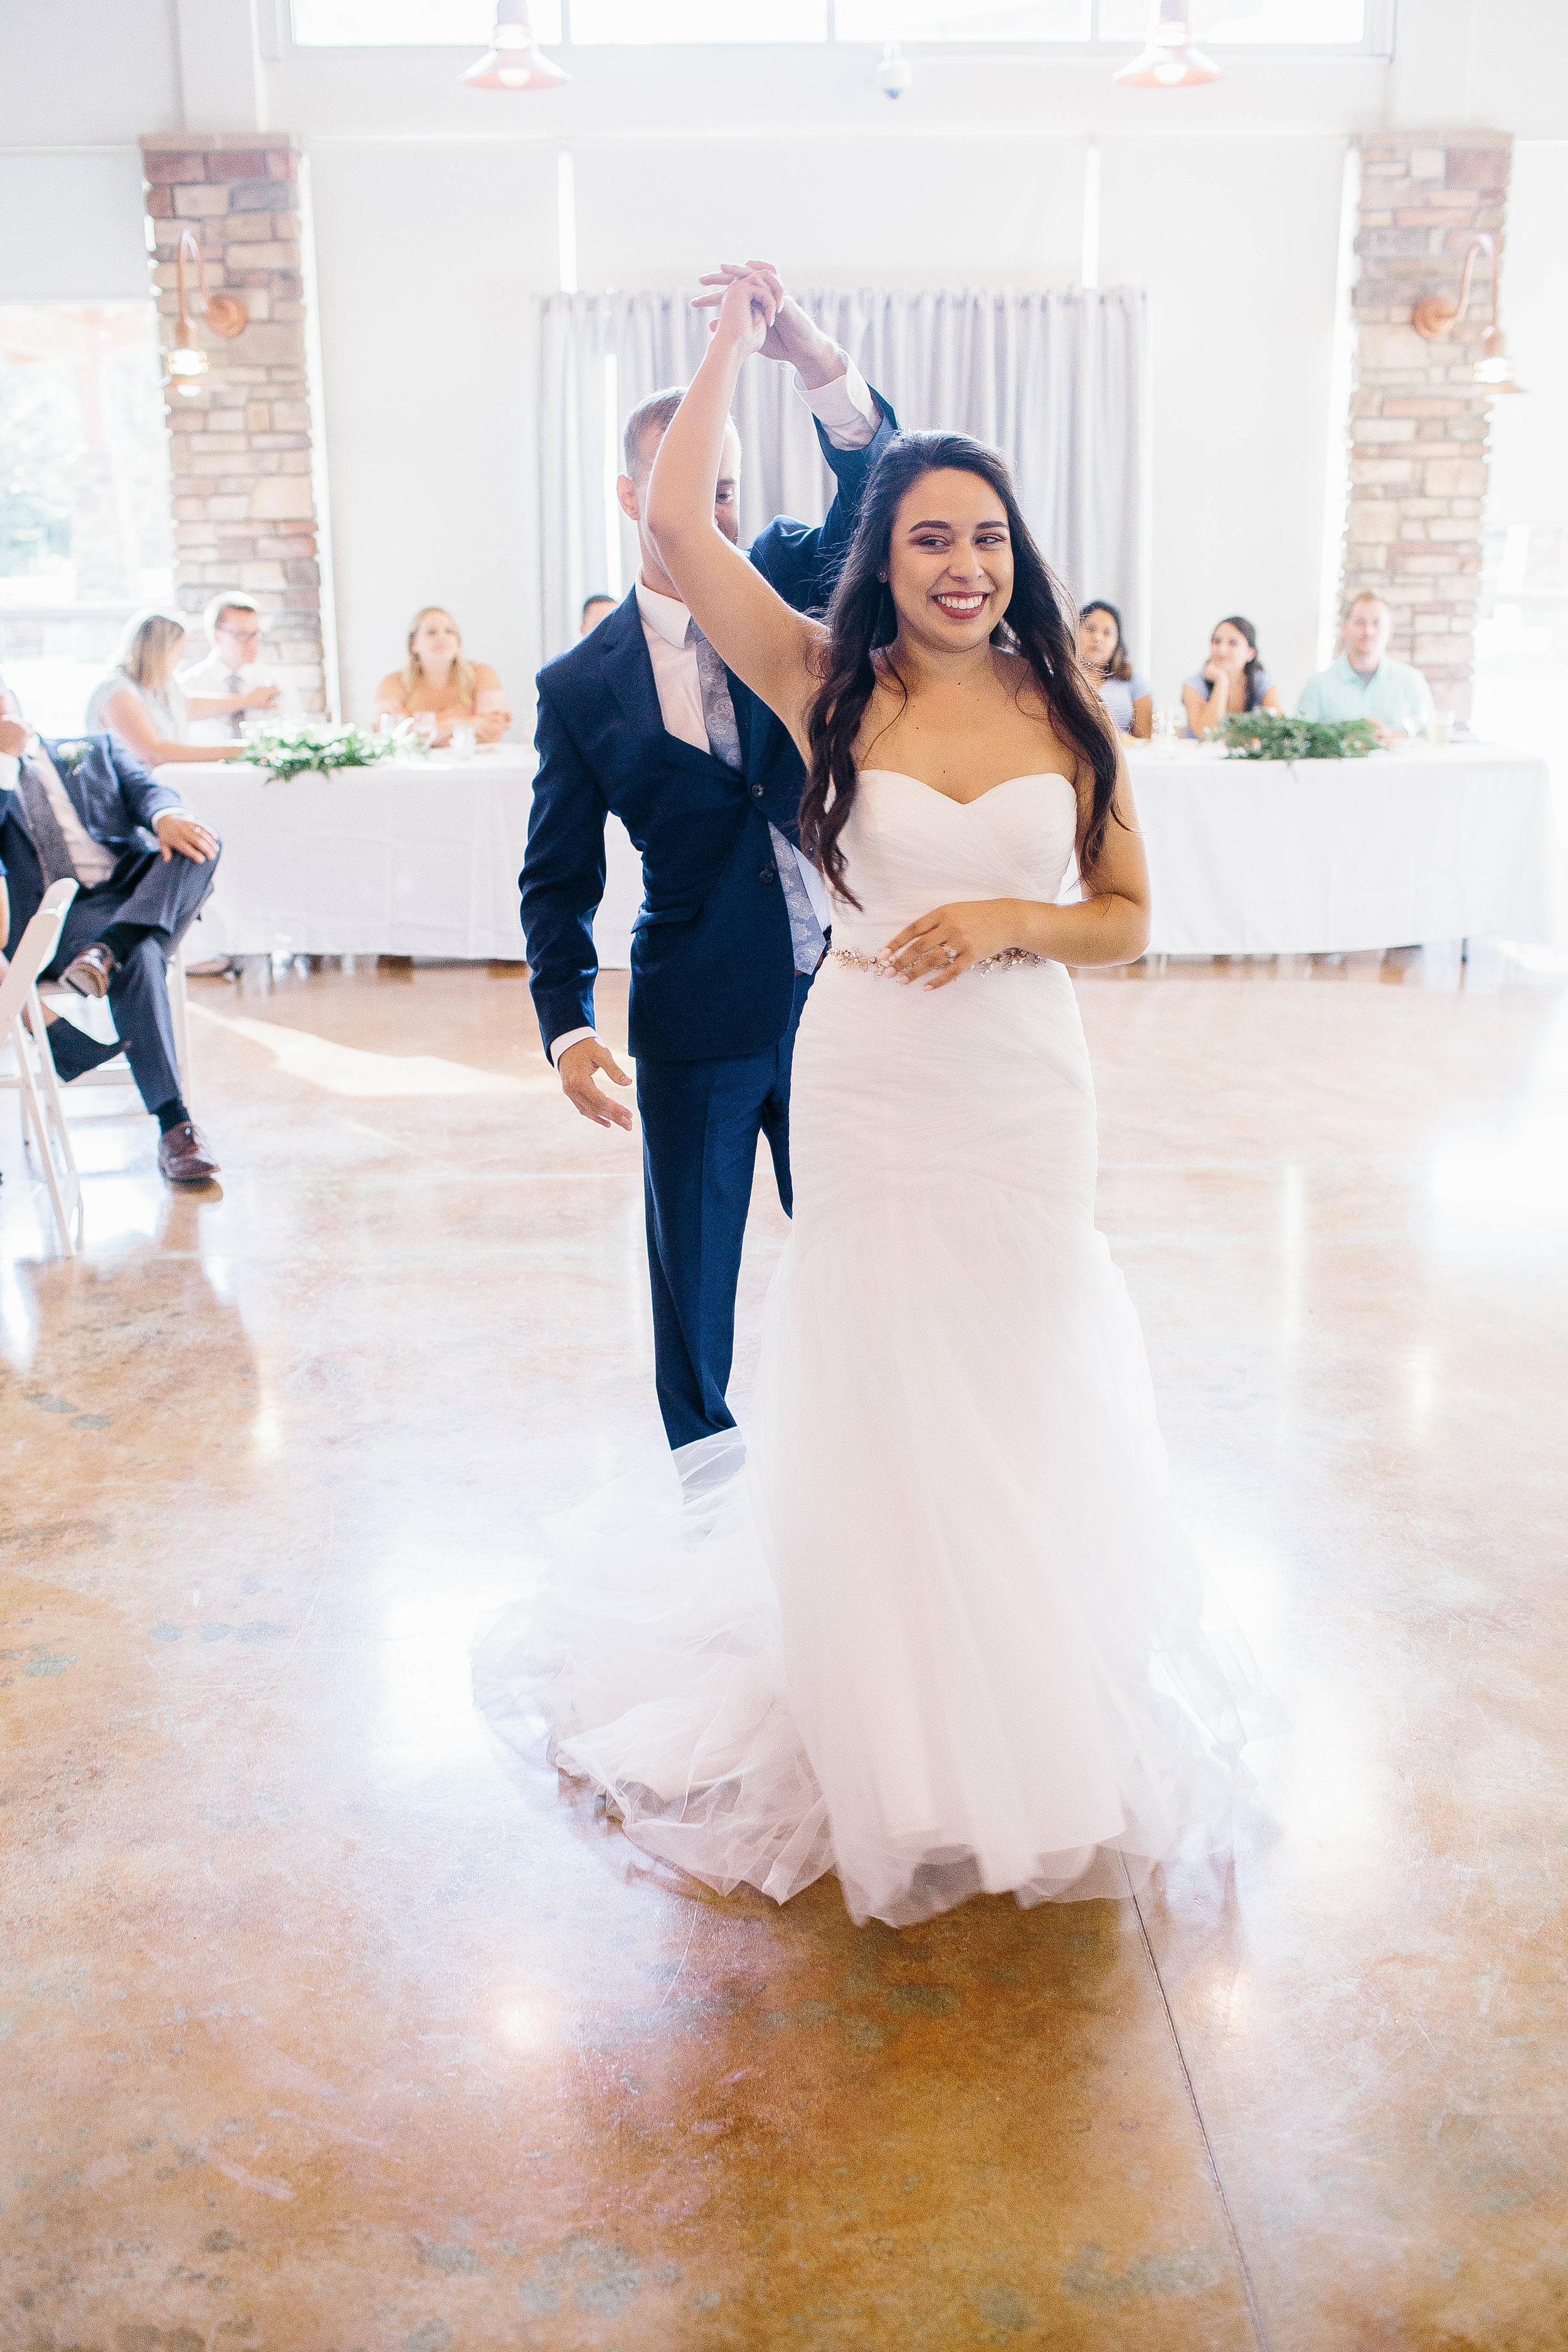 First Dance Photos- Boise Photographer- Boise Wedding Photographer- Idaho Photographer- Idaho Wedding Photographer